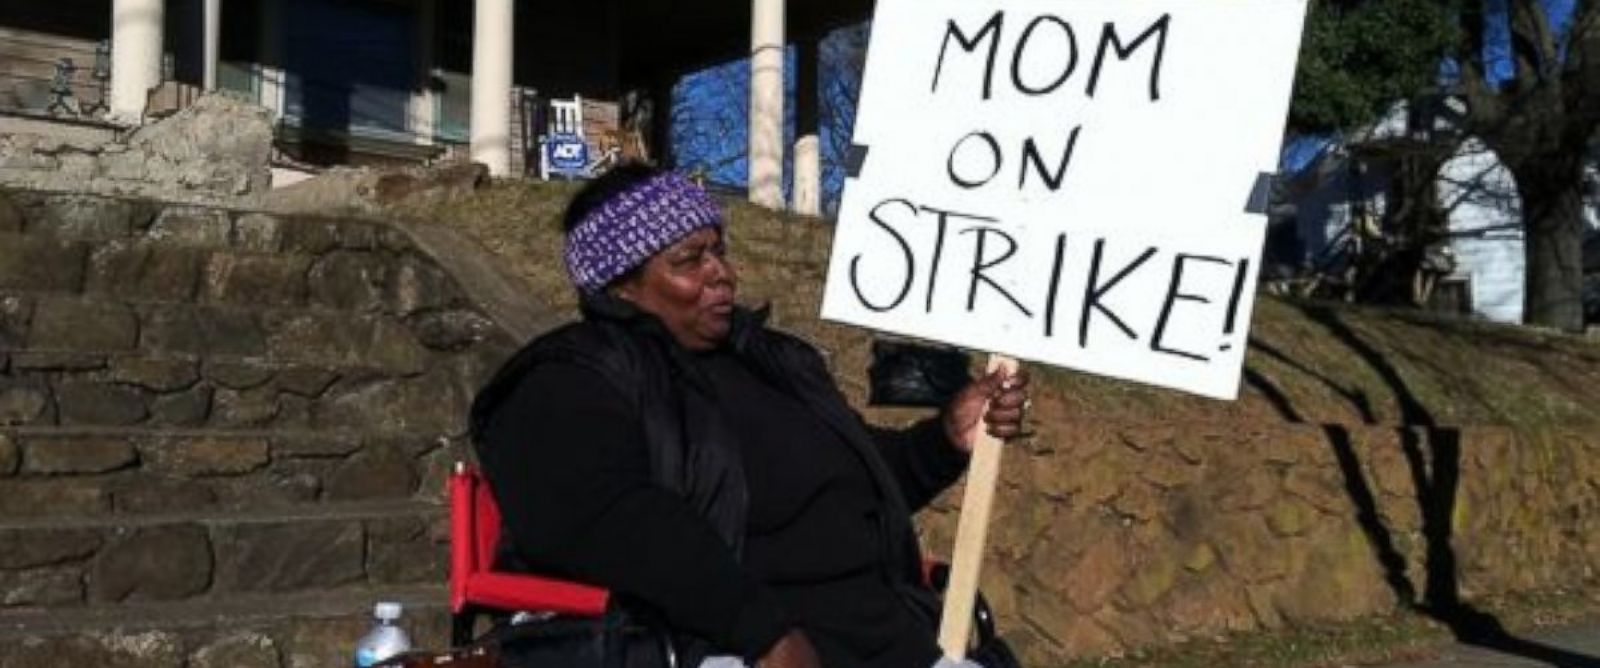 PHOTO: A North Carolina mom pictured here is on strike to protest her childrens out of control behavior.